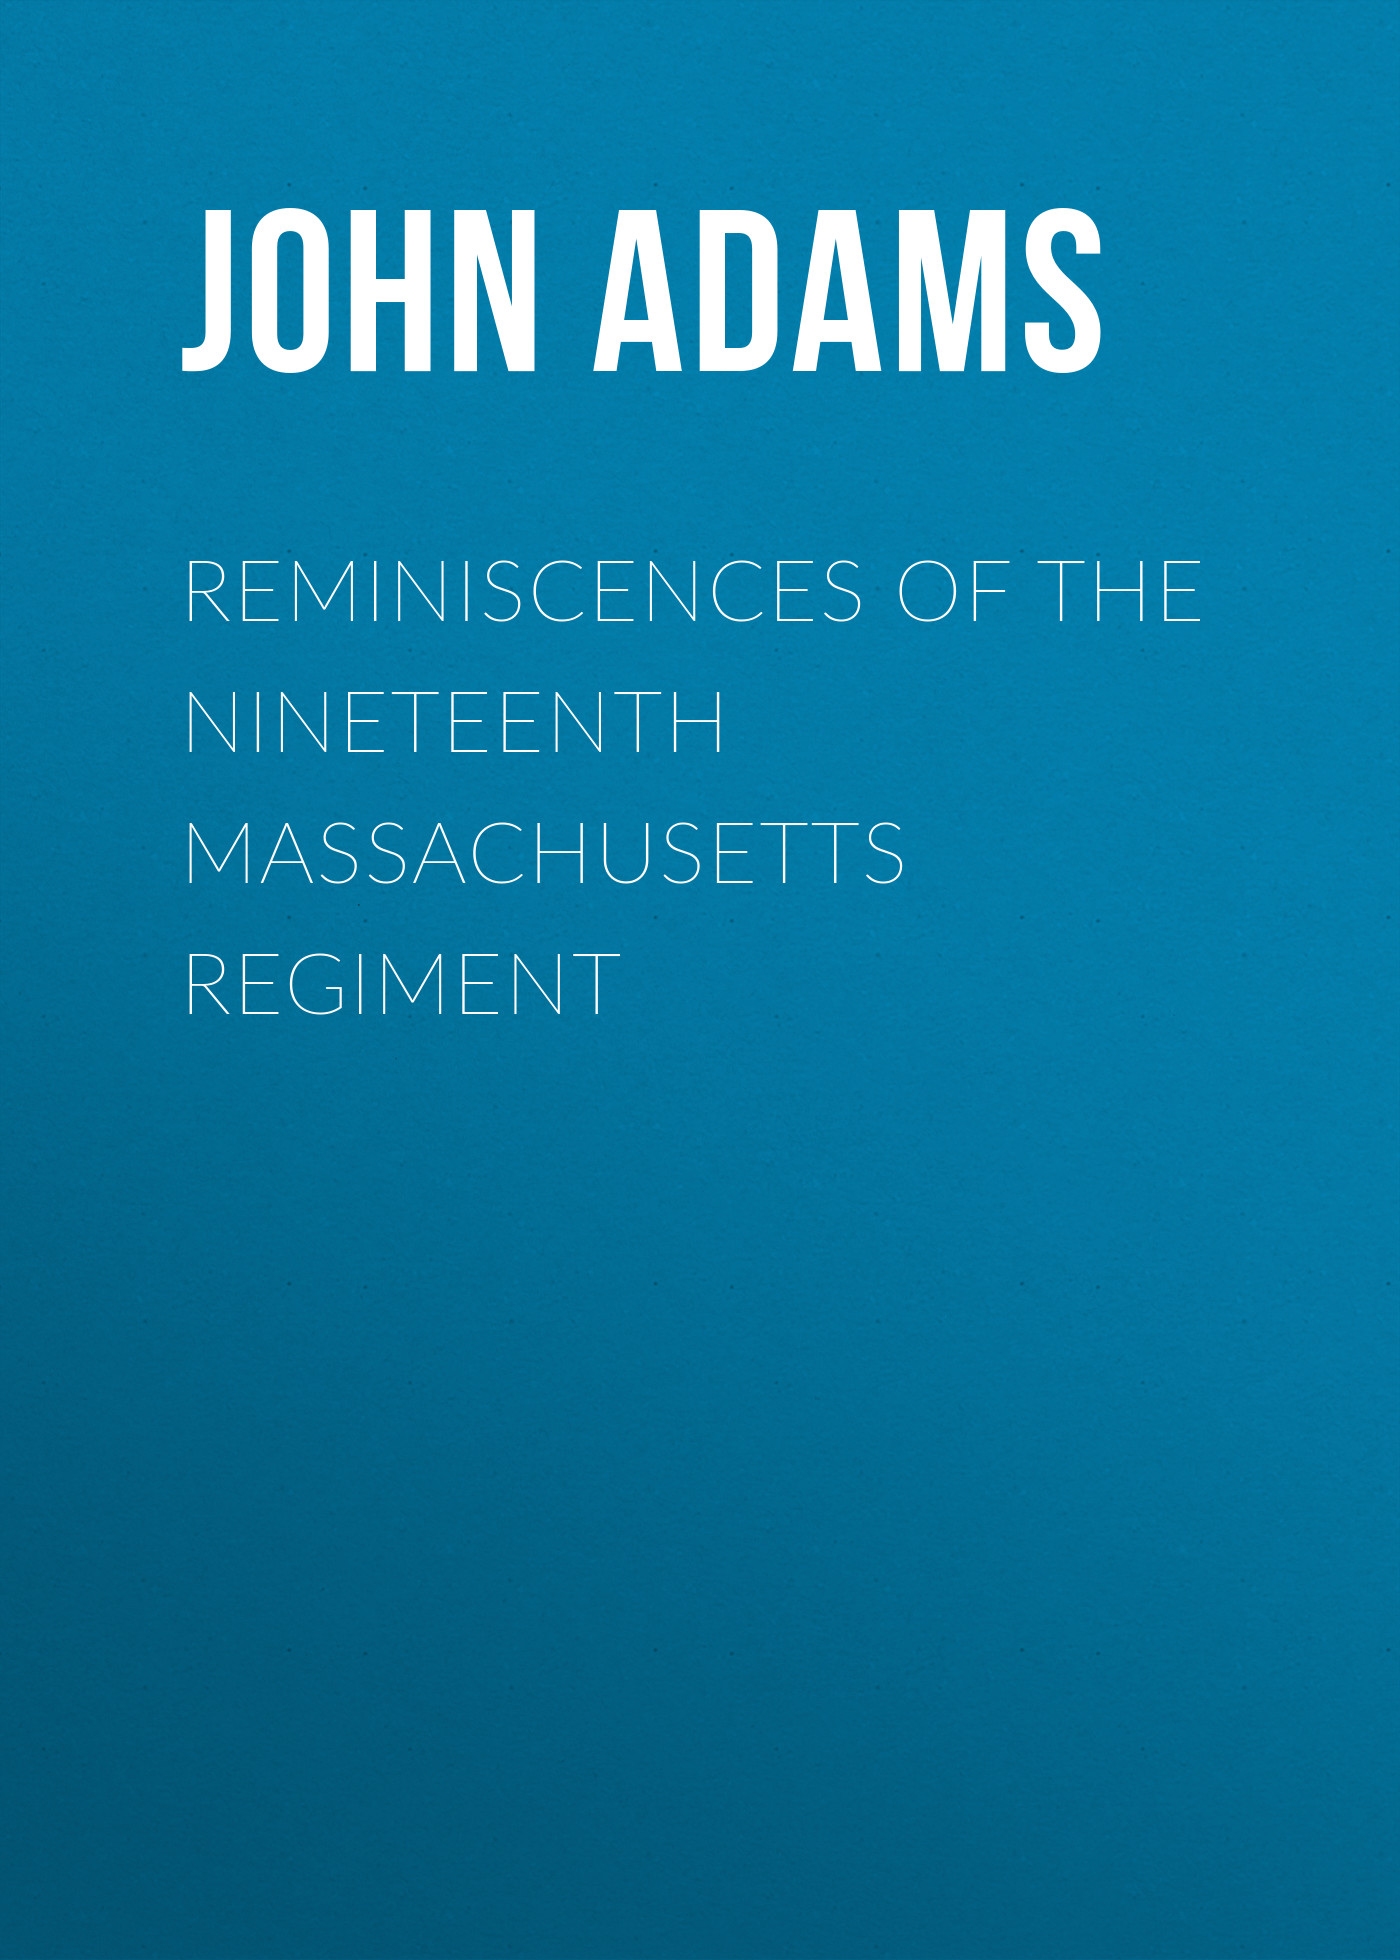 Adams John Gregory Bishop Reminiscences of the Nineteenth Massachusetts regiment john adams the death of klinghoffer